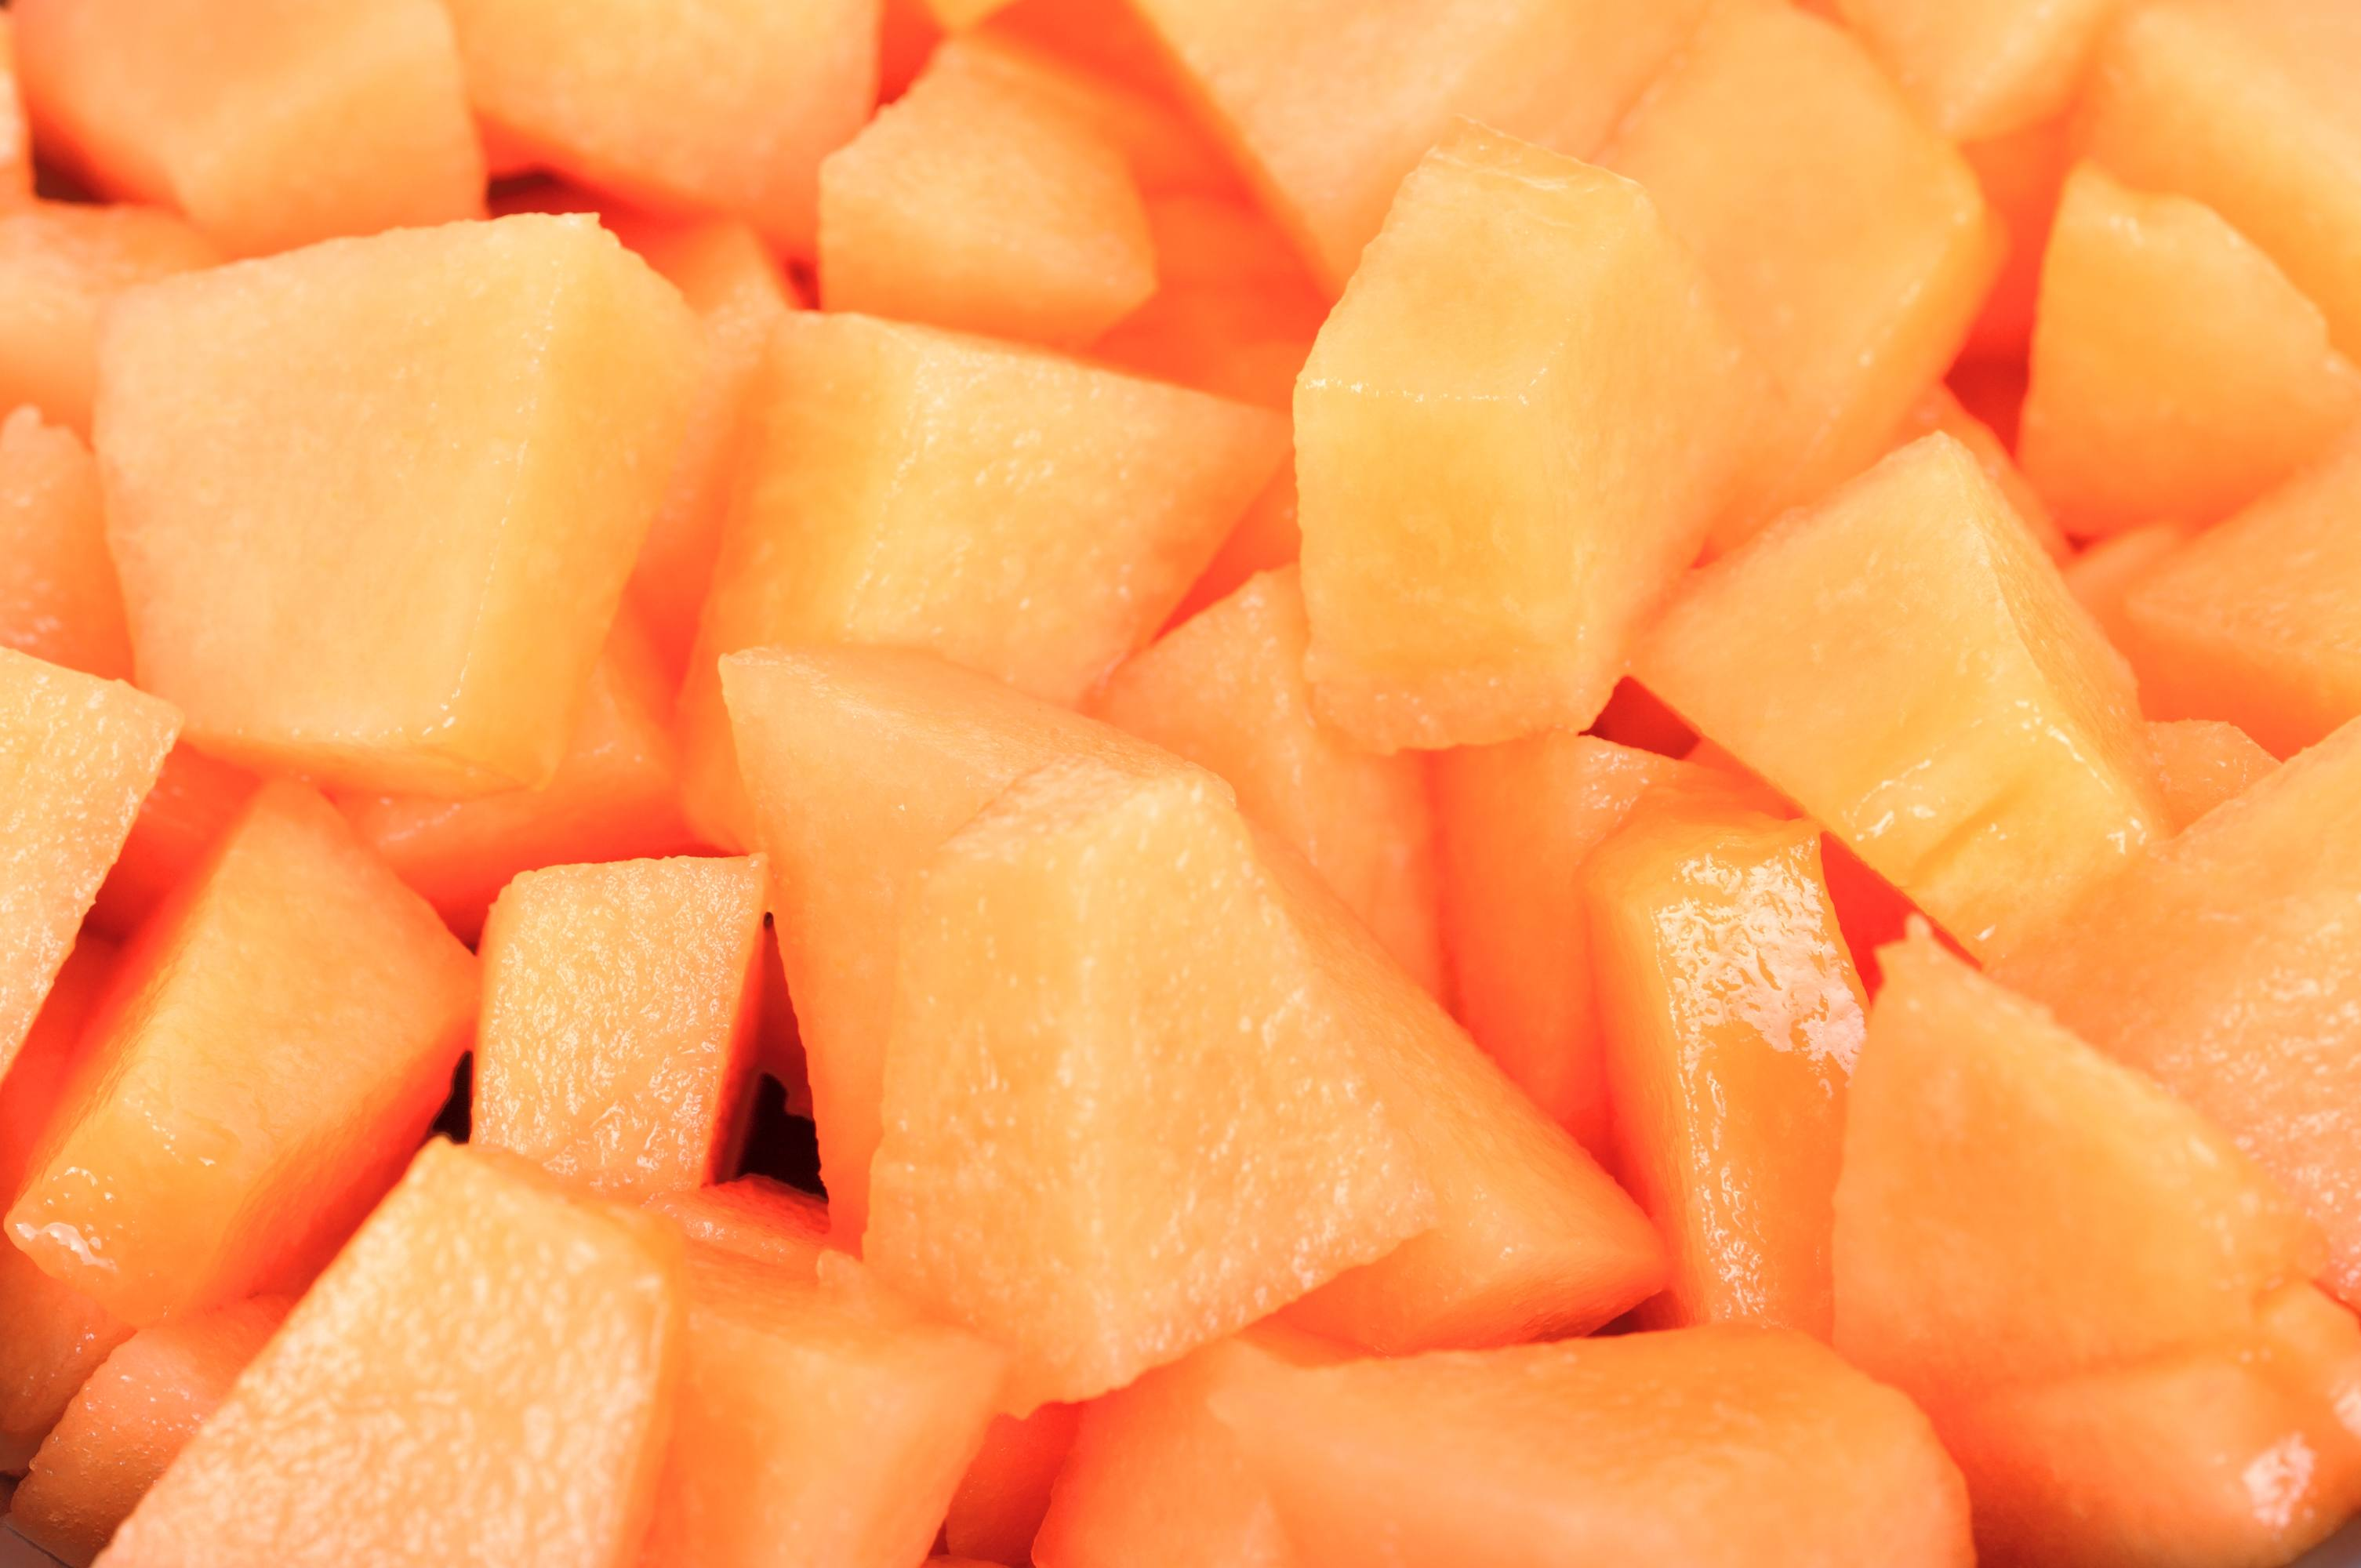 close up of chopped up and pre-cut melon, fruit